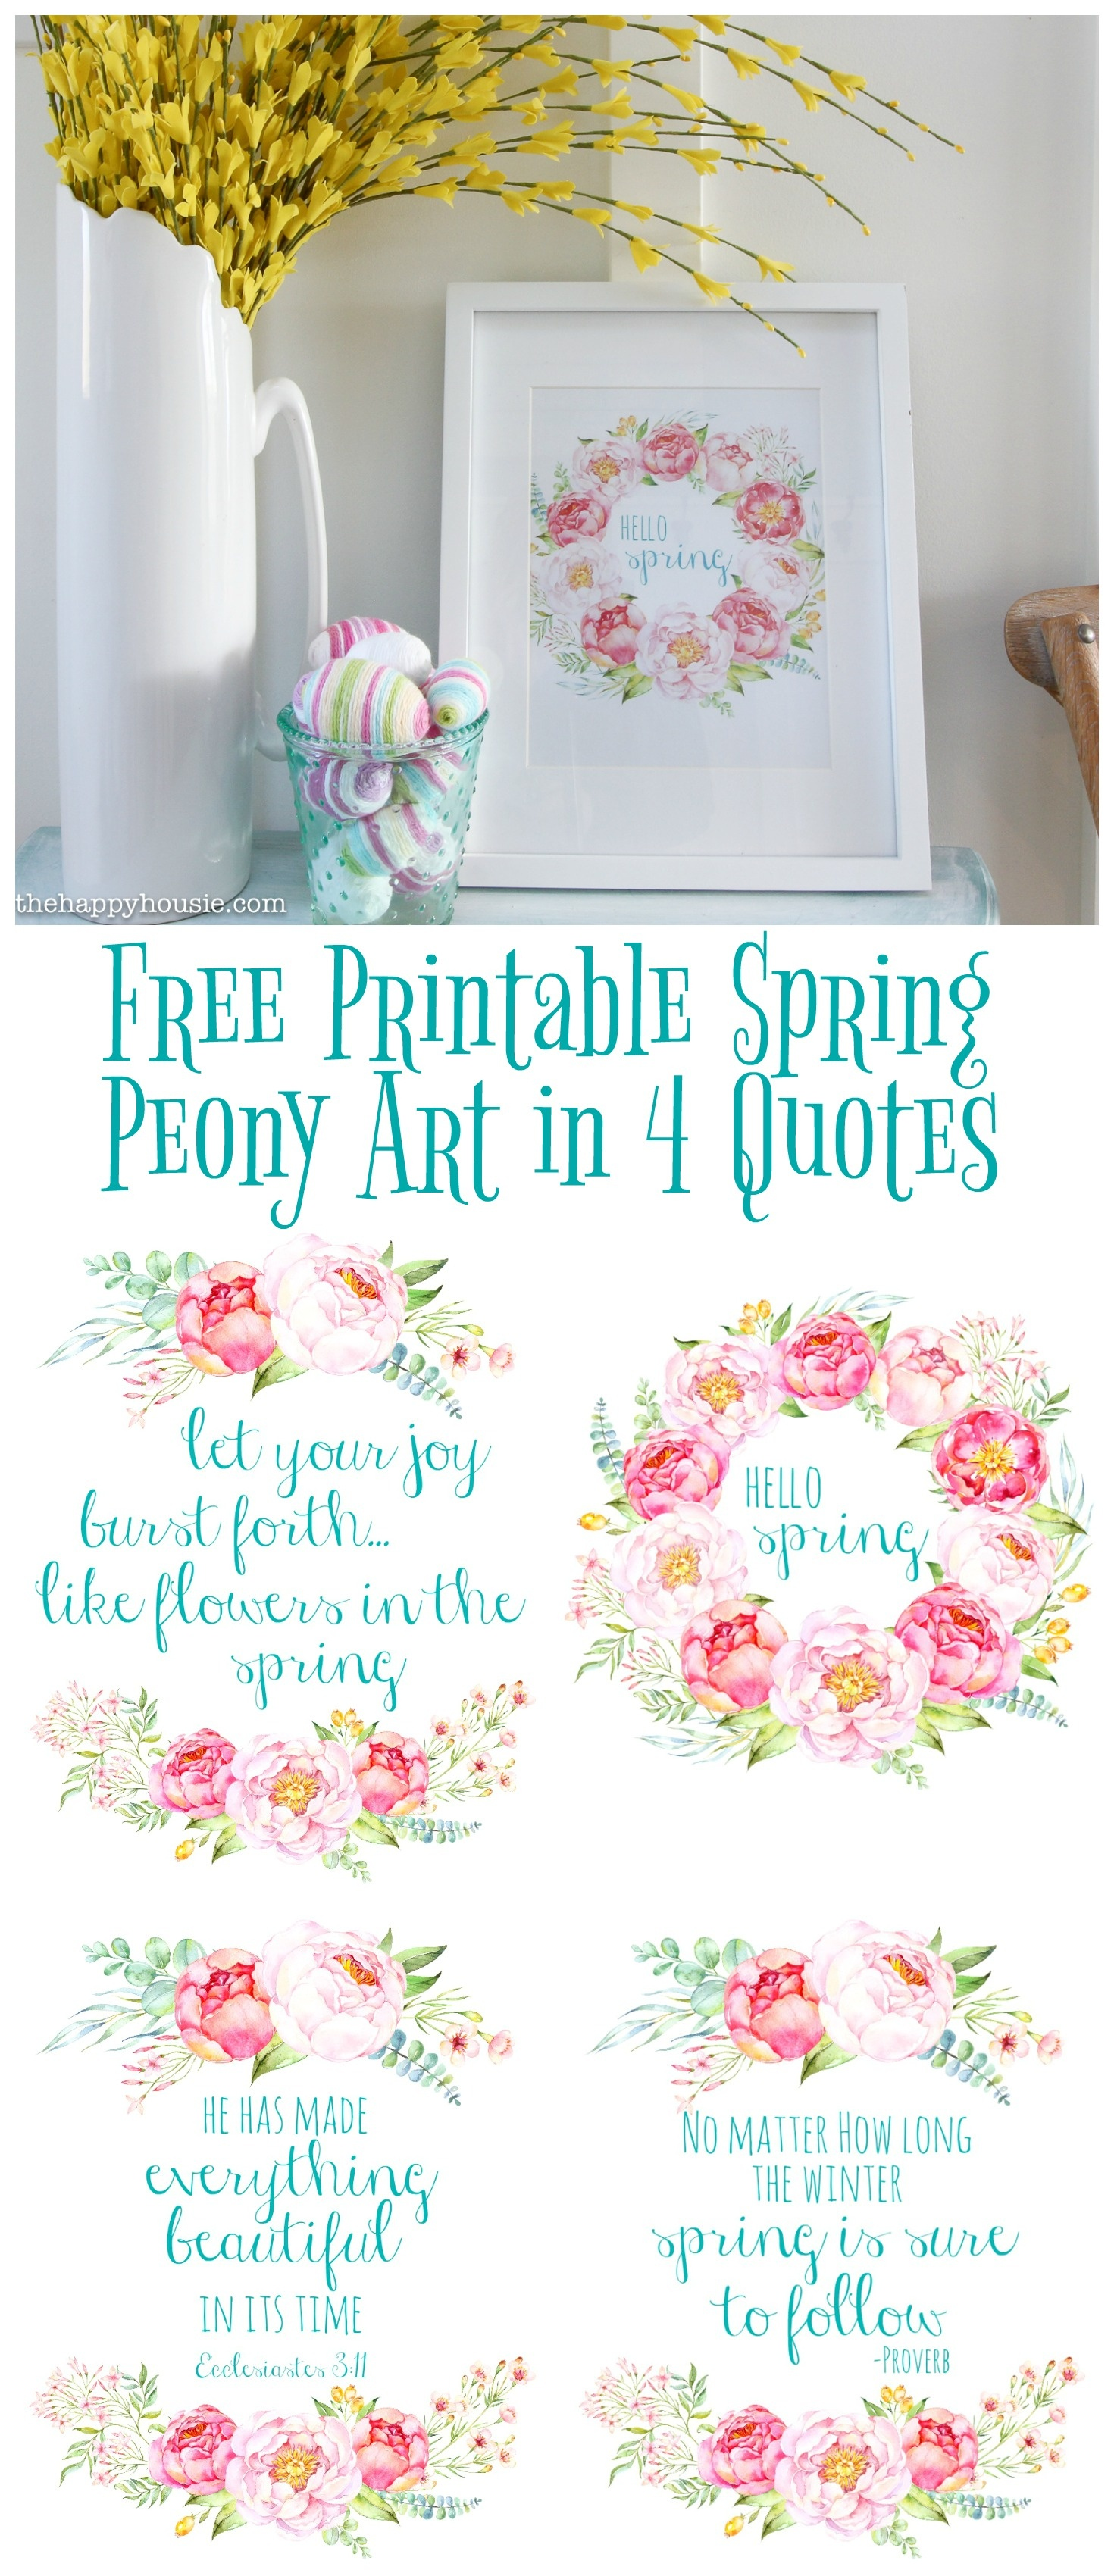 Free Printable Spring Peony Art & Easter Art   The Happy Housie - Free Printable Spring Decorations